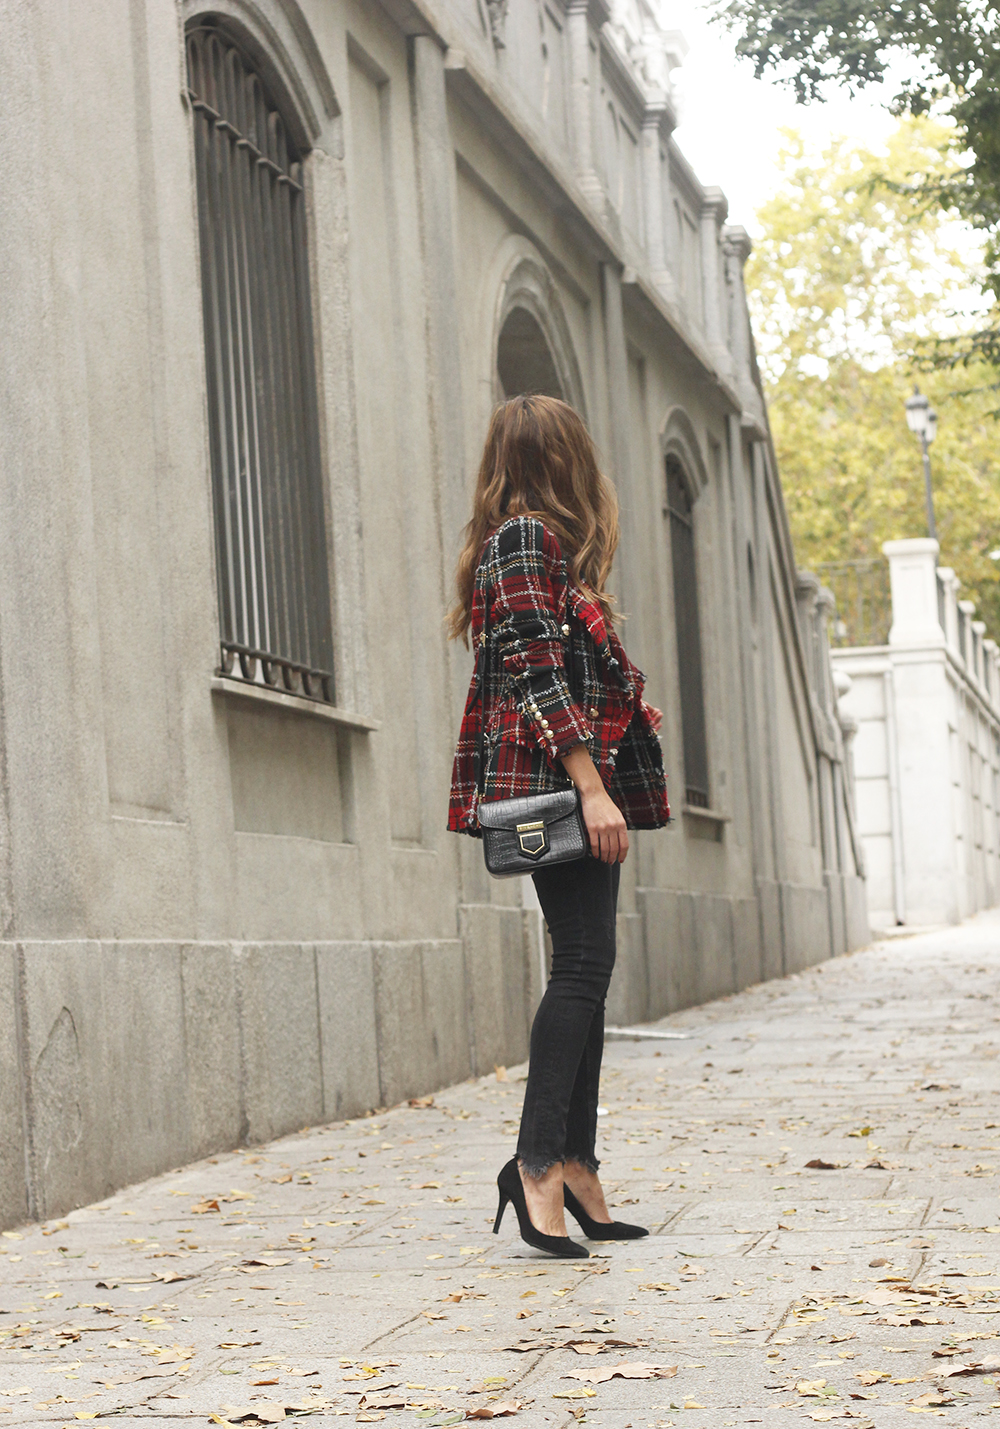 Tartan blazer black outfit heels givenchy bag street style fall outfit 20183808